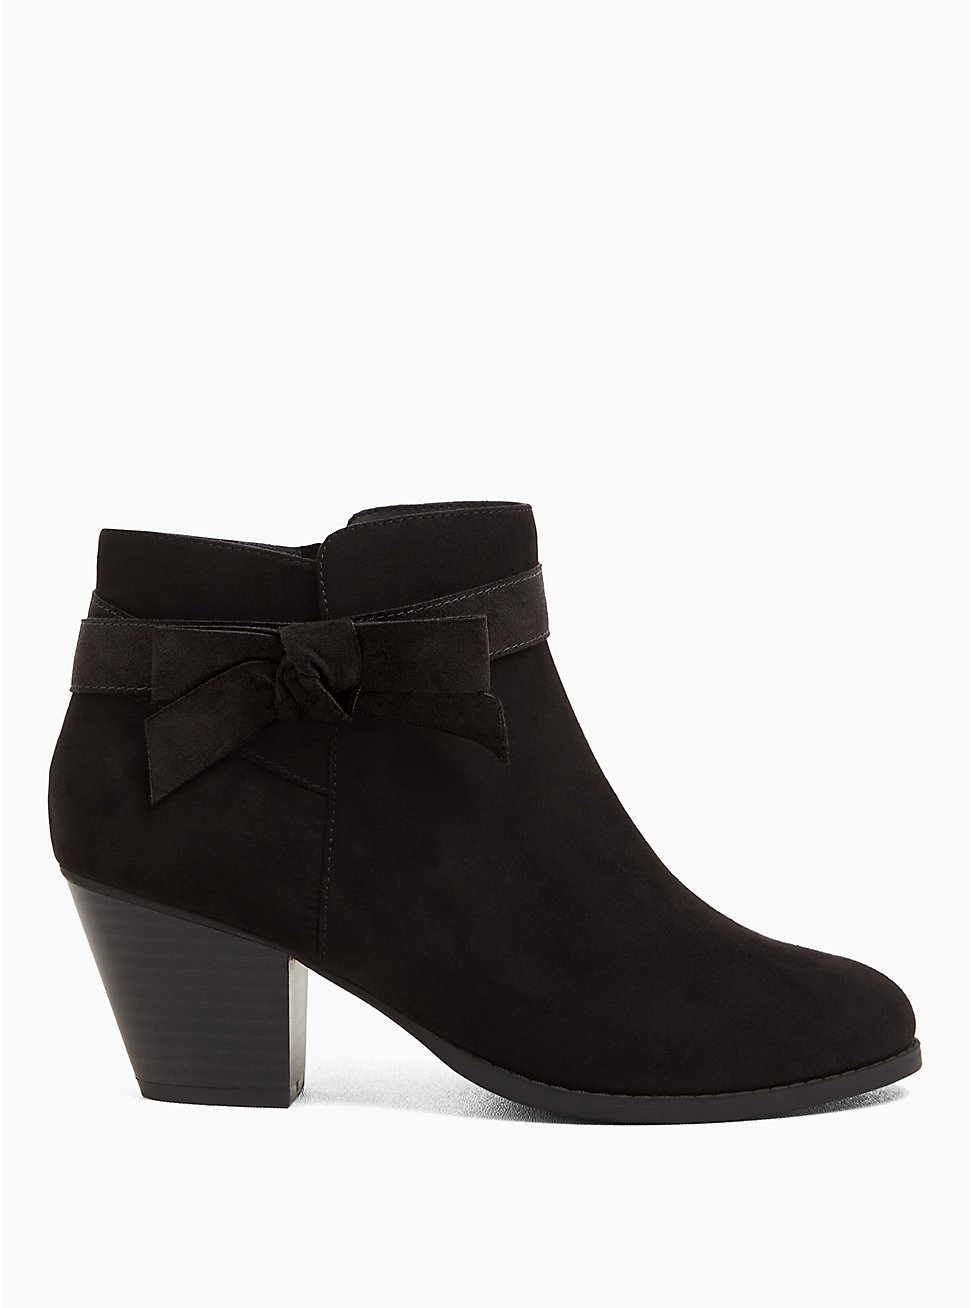 Black Faux Suede Side Bow Bootie (WW), BLACK, hi-res